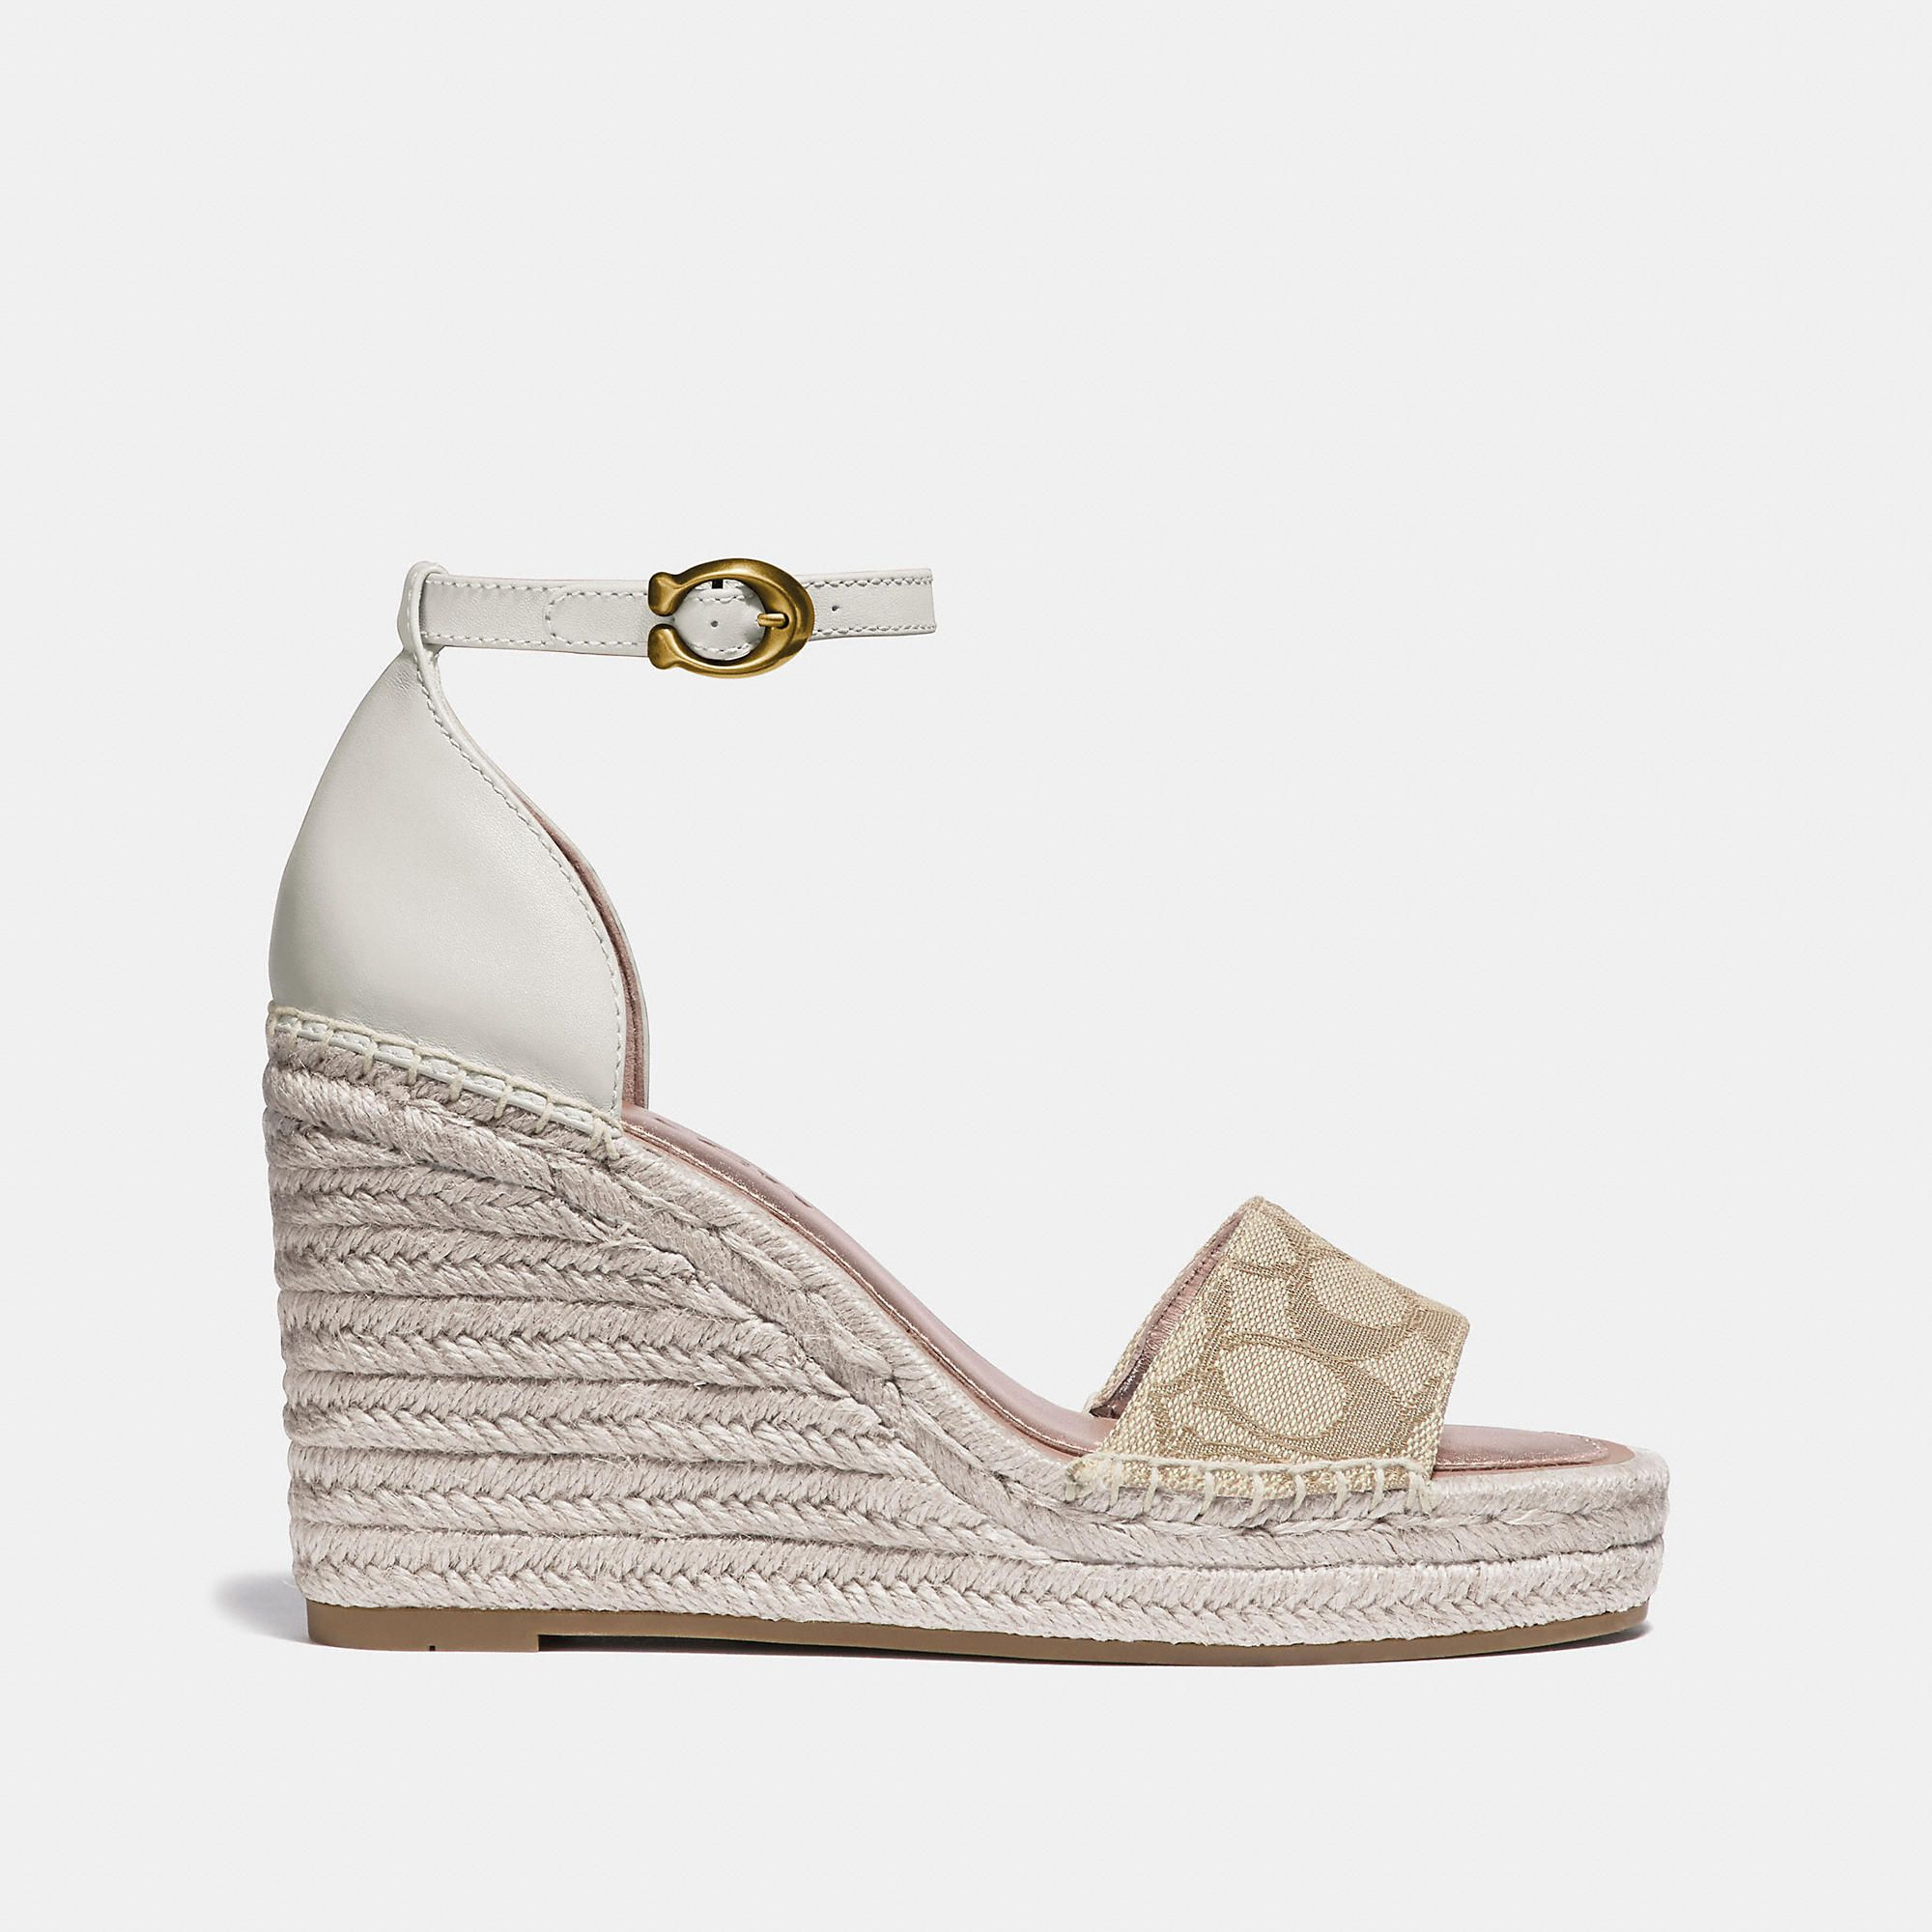 03048e53493 Kit Wedge Espadrille in 2019 | Products | Espadrilles, Wedges, Shoes